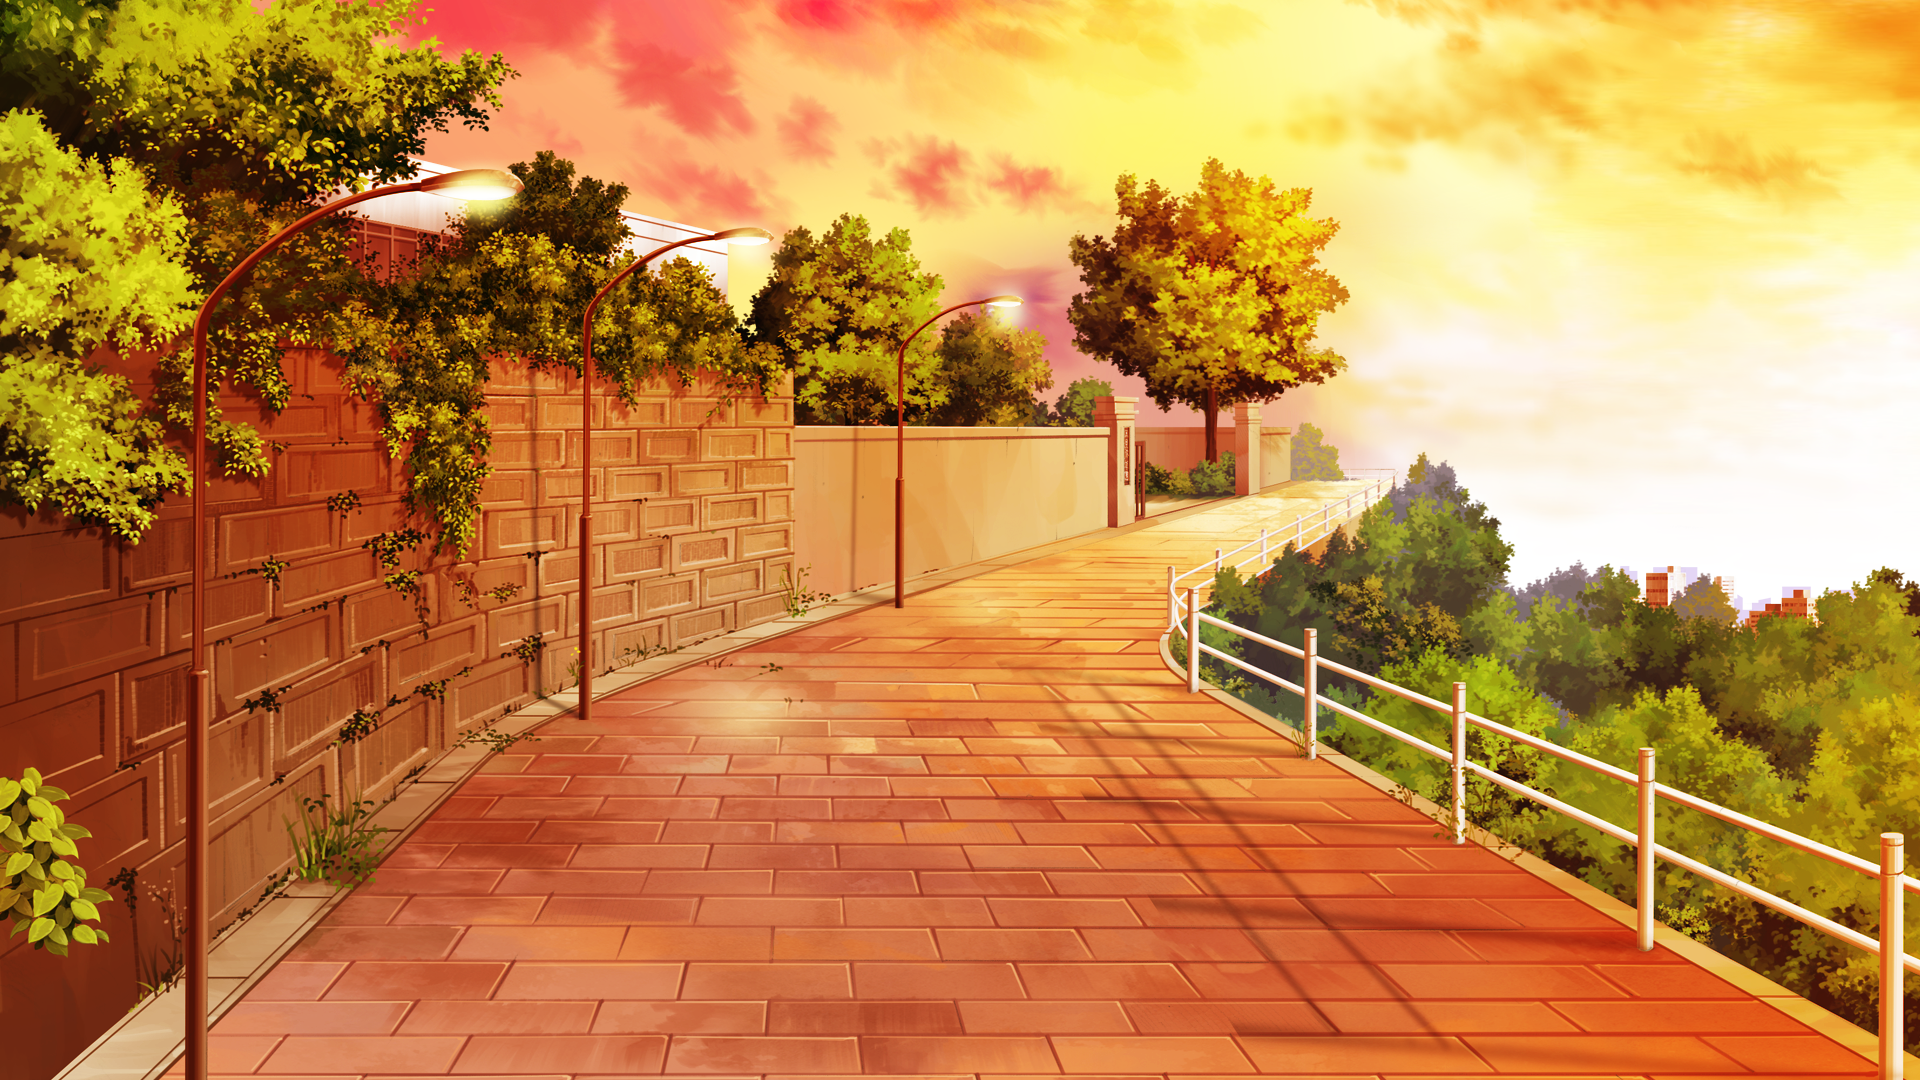 Png Scenery Backgrounds & Free Scenery Backgrounds.png Transparent.